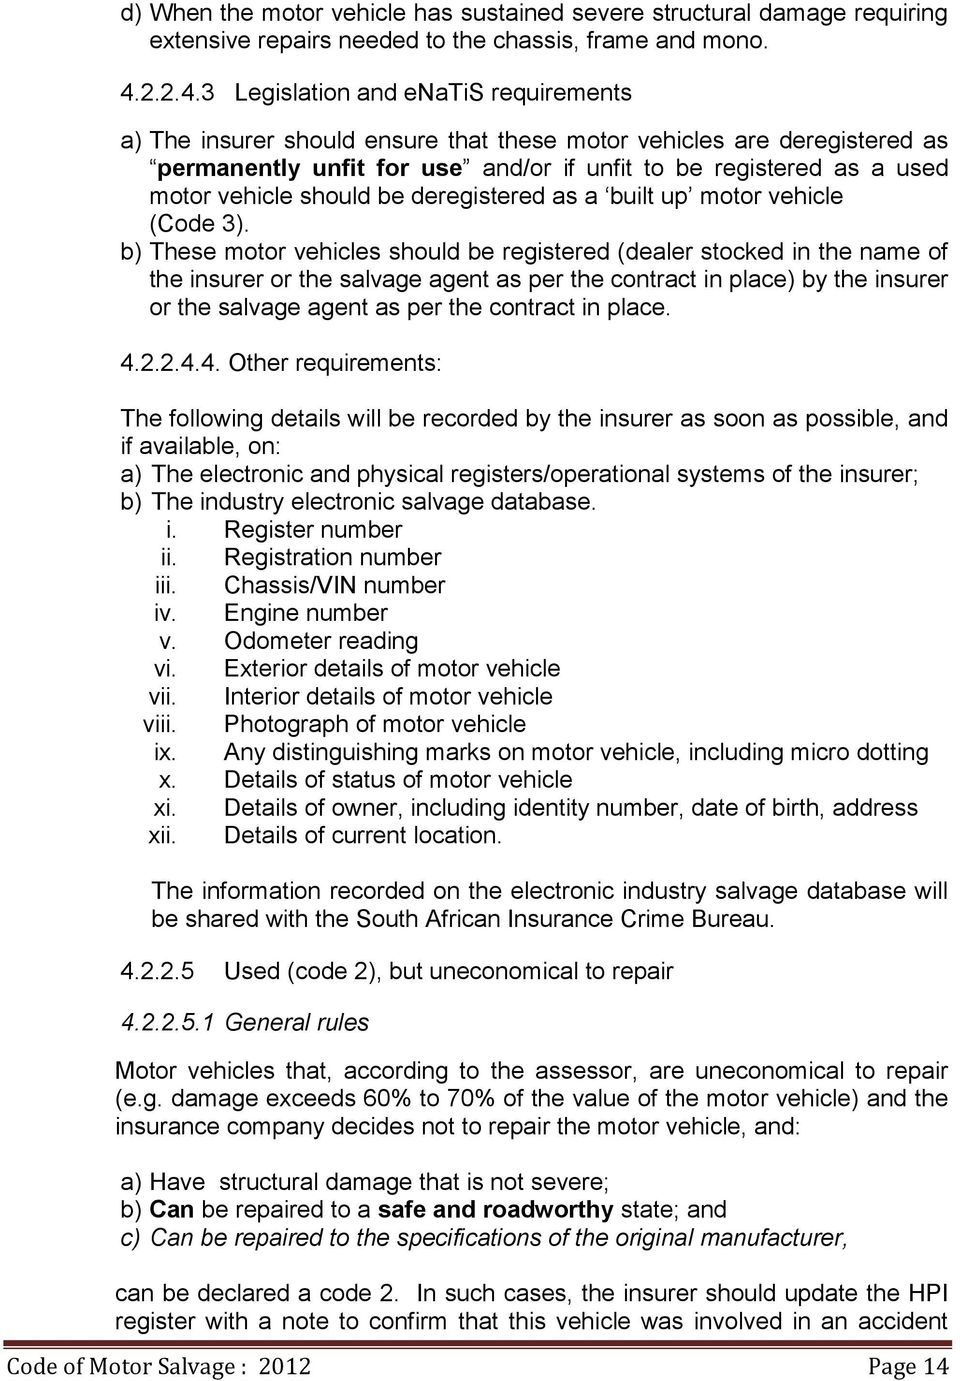 3 Legislation and enatis requirements a) The insurer should ensure that these motor vehicles are deregistered as permanently unfit for use and/or if unfit to be registered as a used motor vehicle